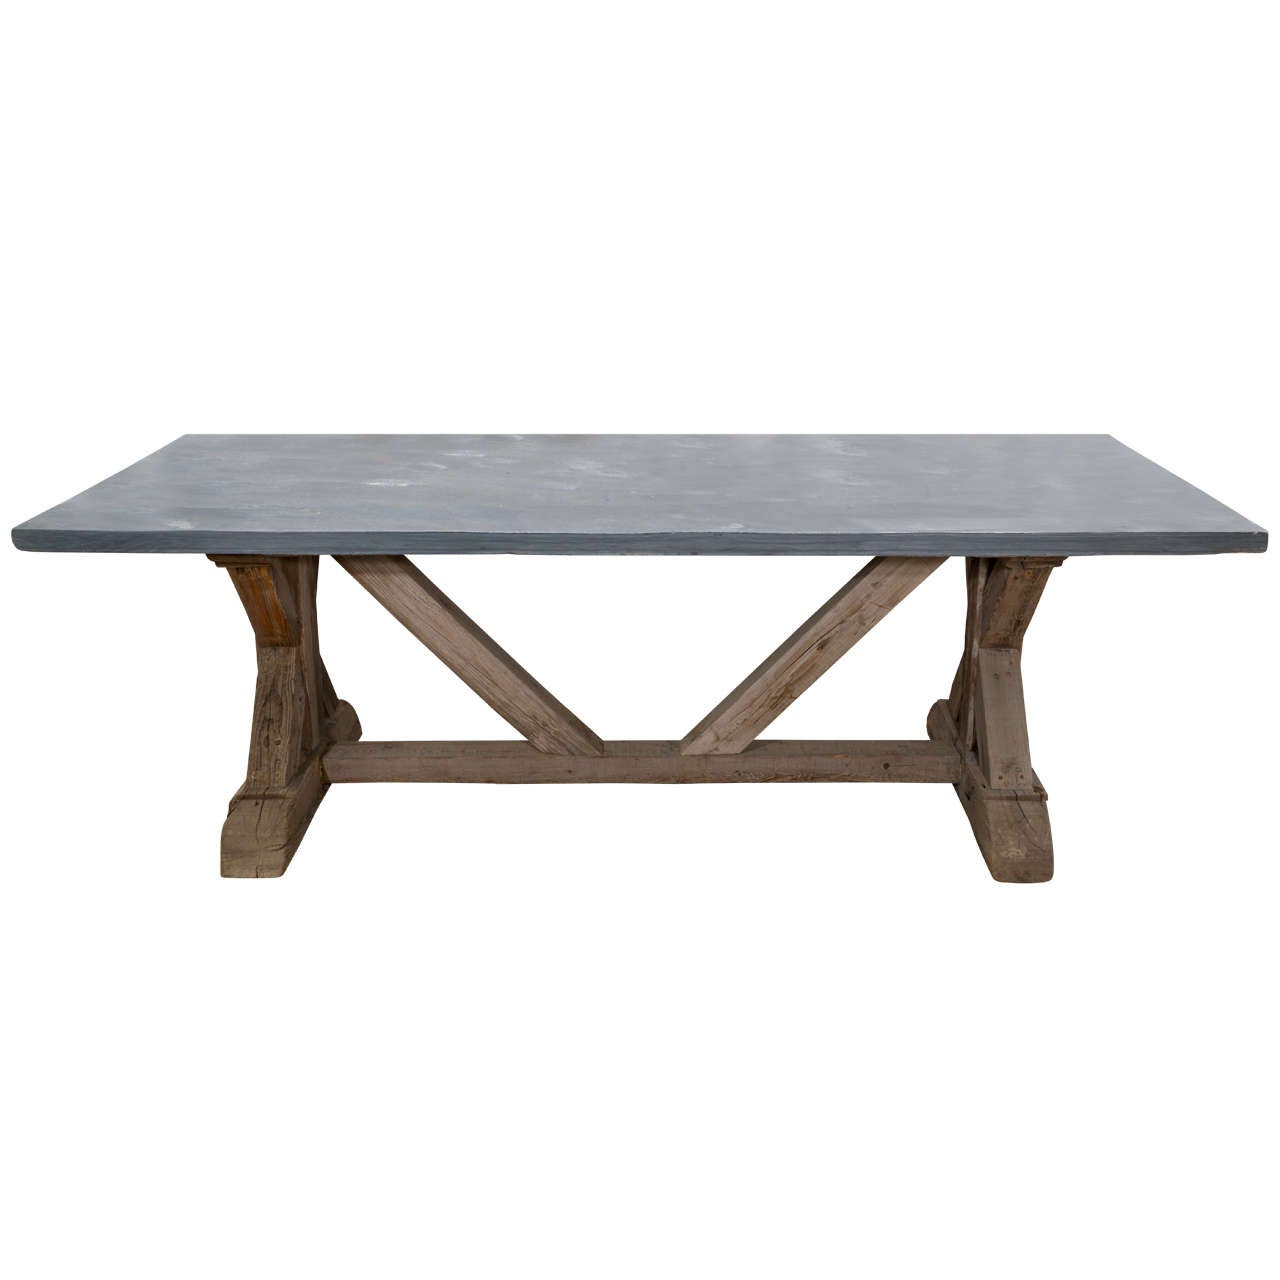 Blue stone top dining table made from reclaimed pine at for Stone dining table